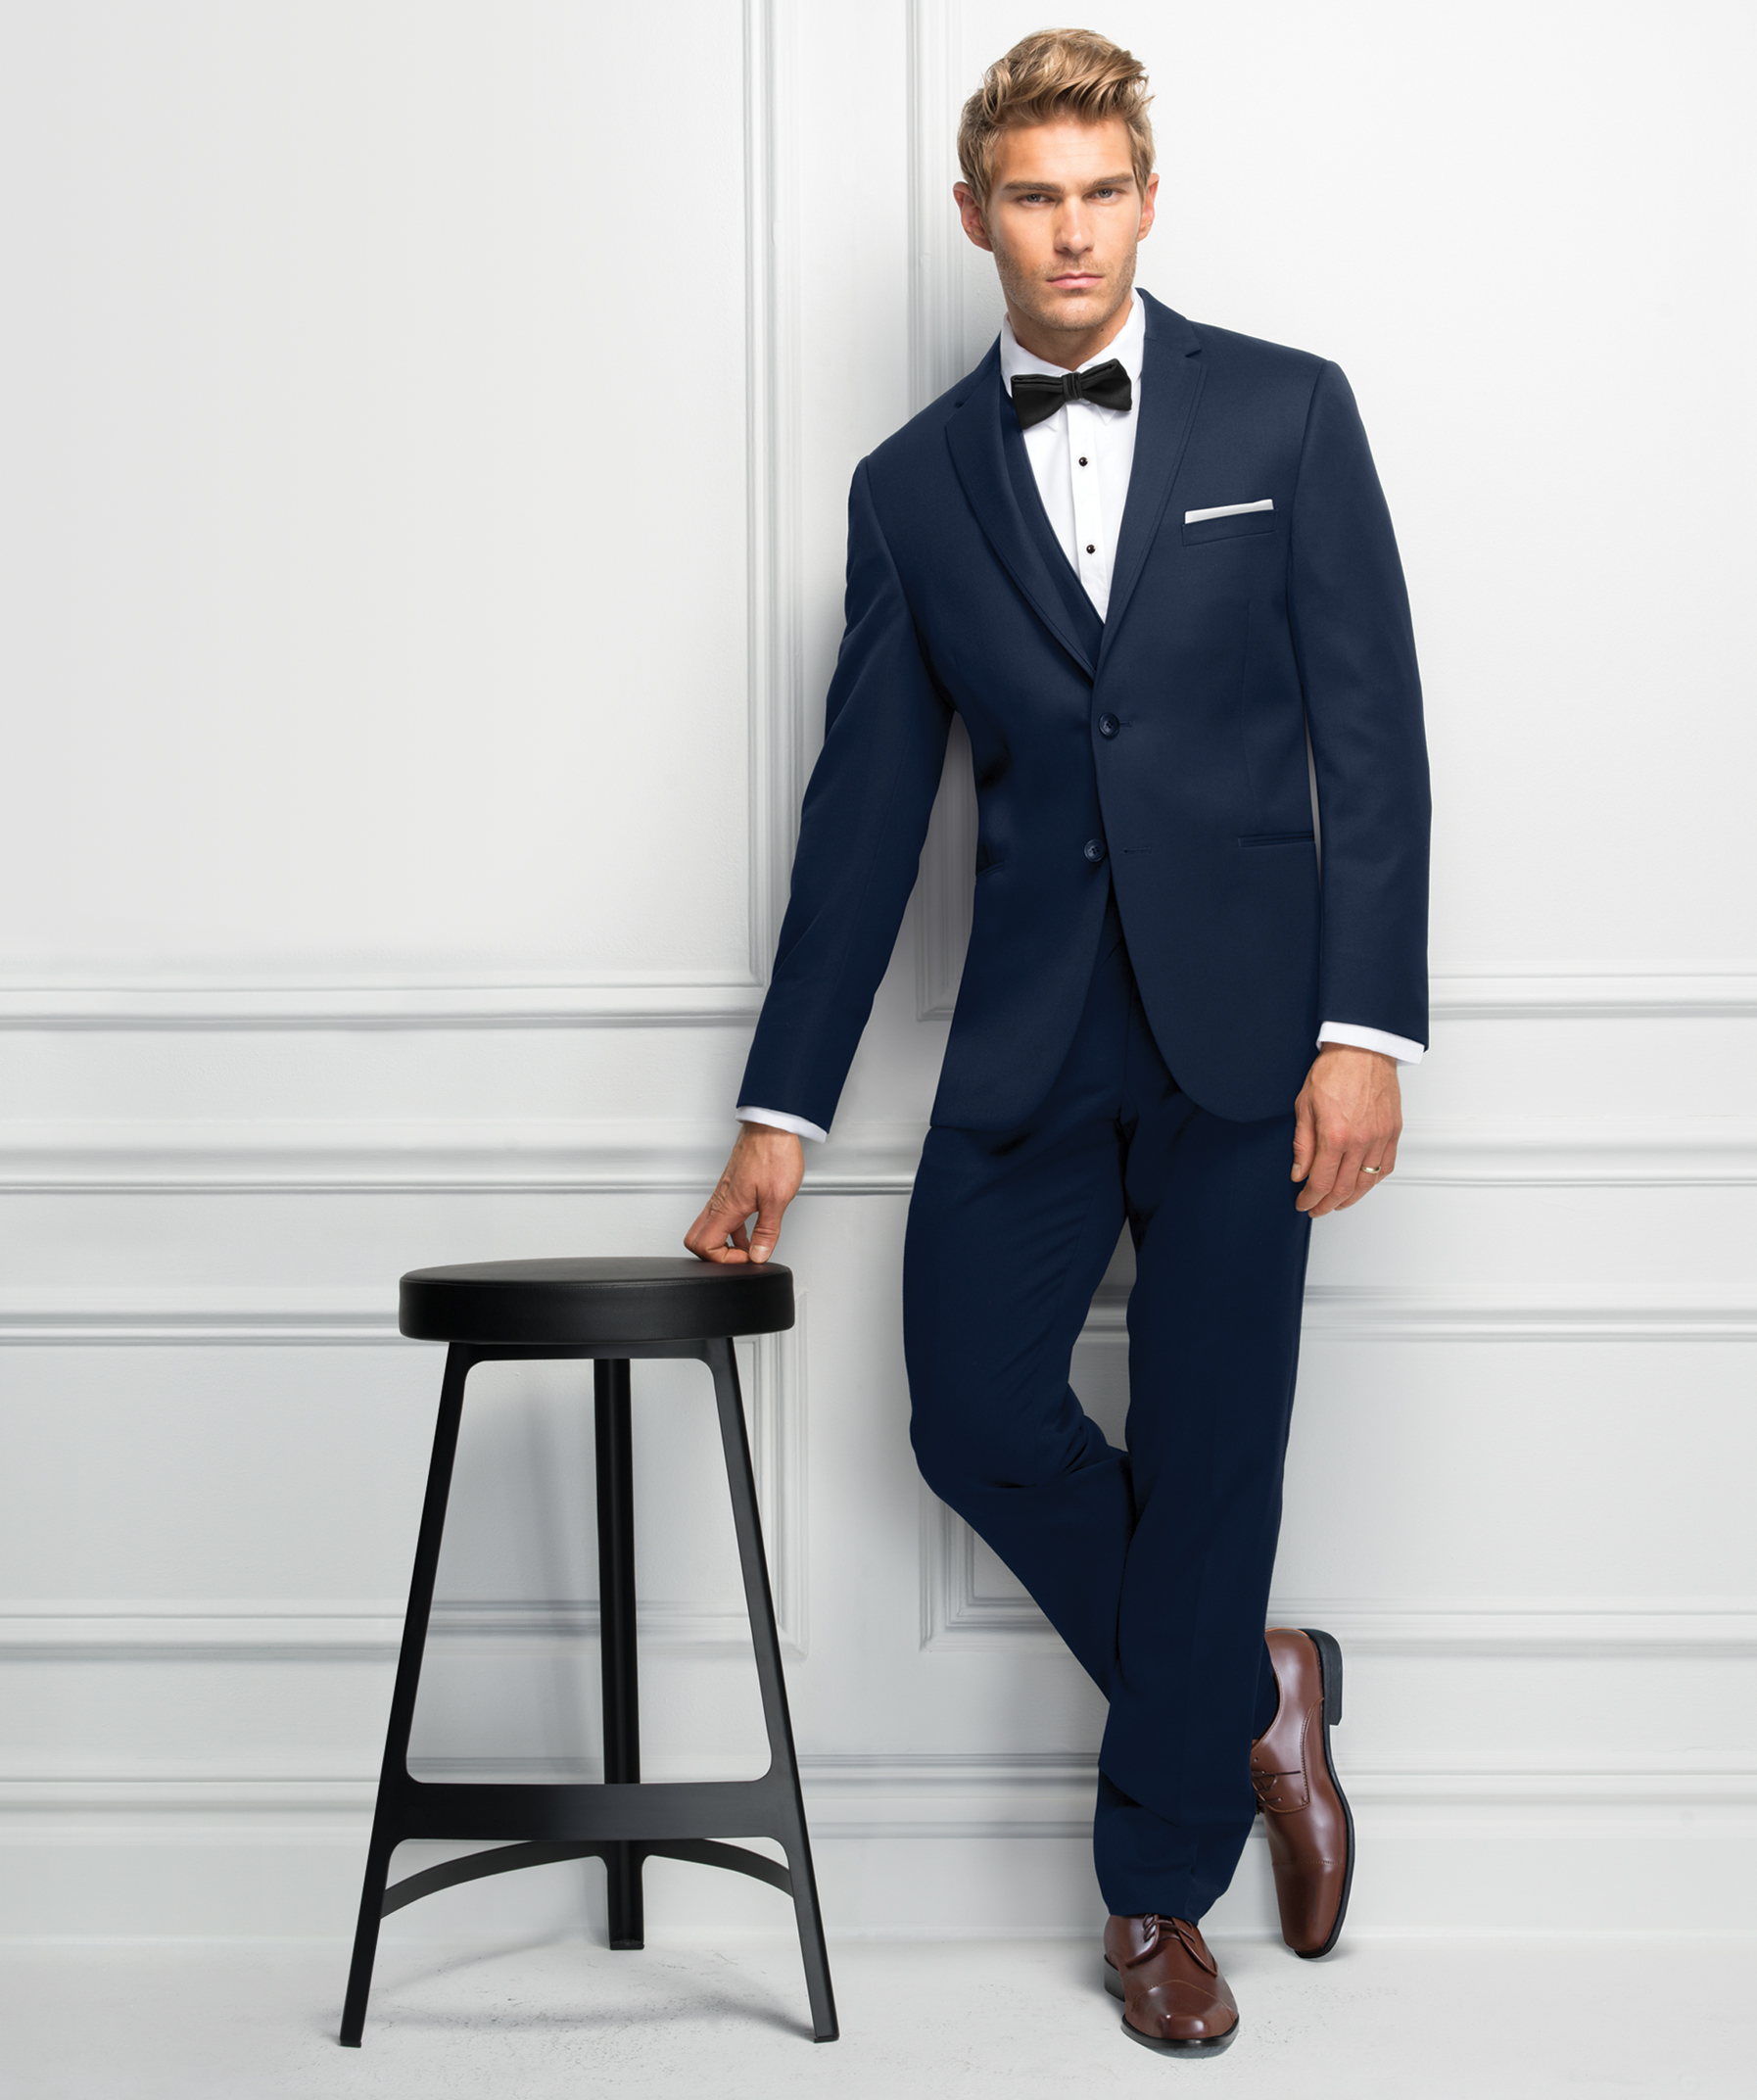 Michael Kors Blue Wedding Suit